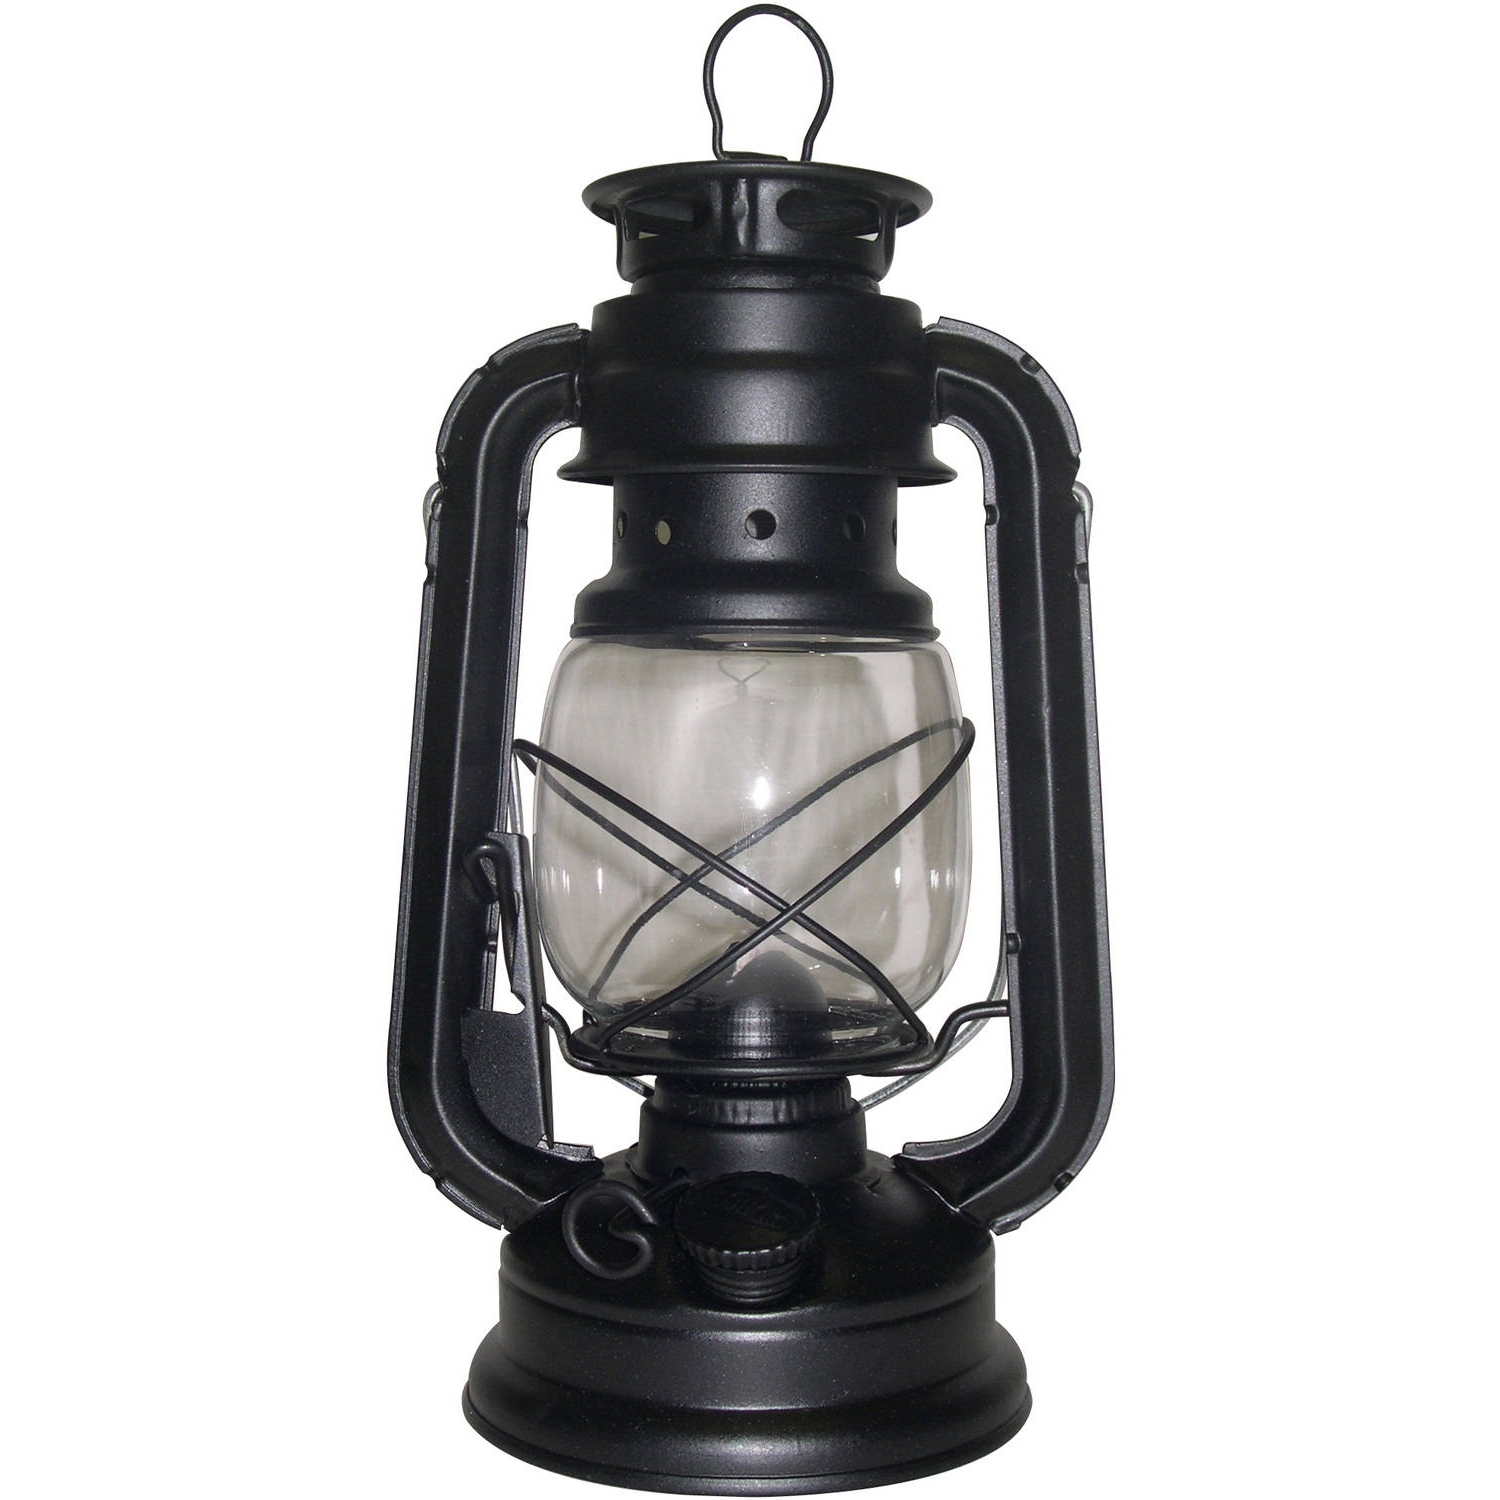 Hurricane Oil Lantern Florasense , Black Original Top Quality Indoor Regarding Widely Used Quality Outdoor Lanterns (View 12 of 20)